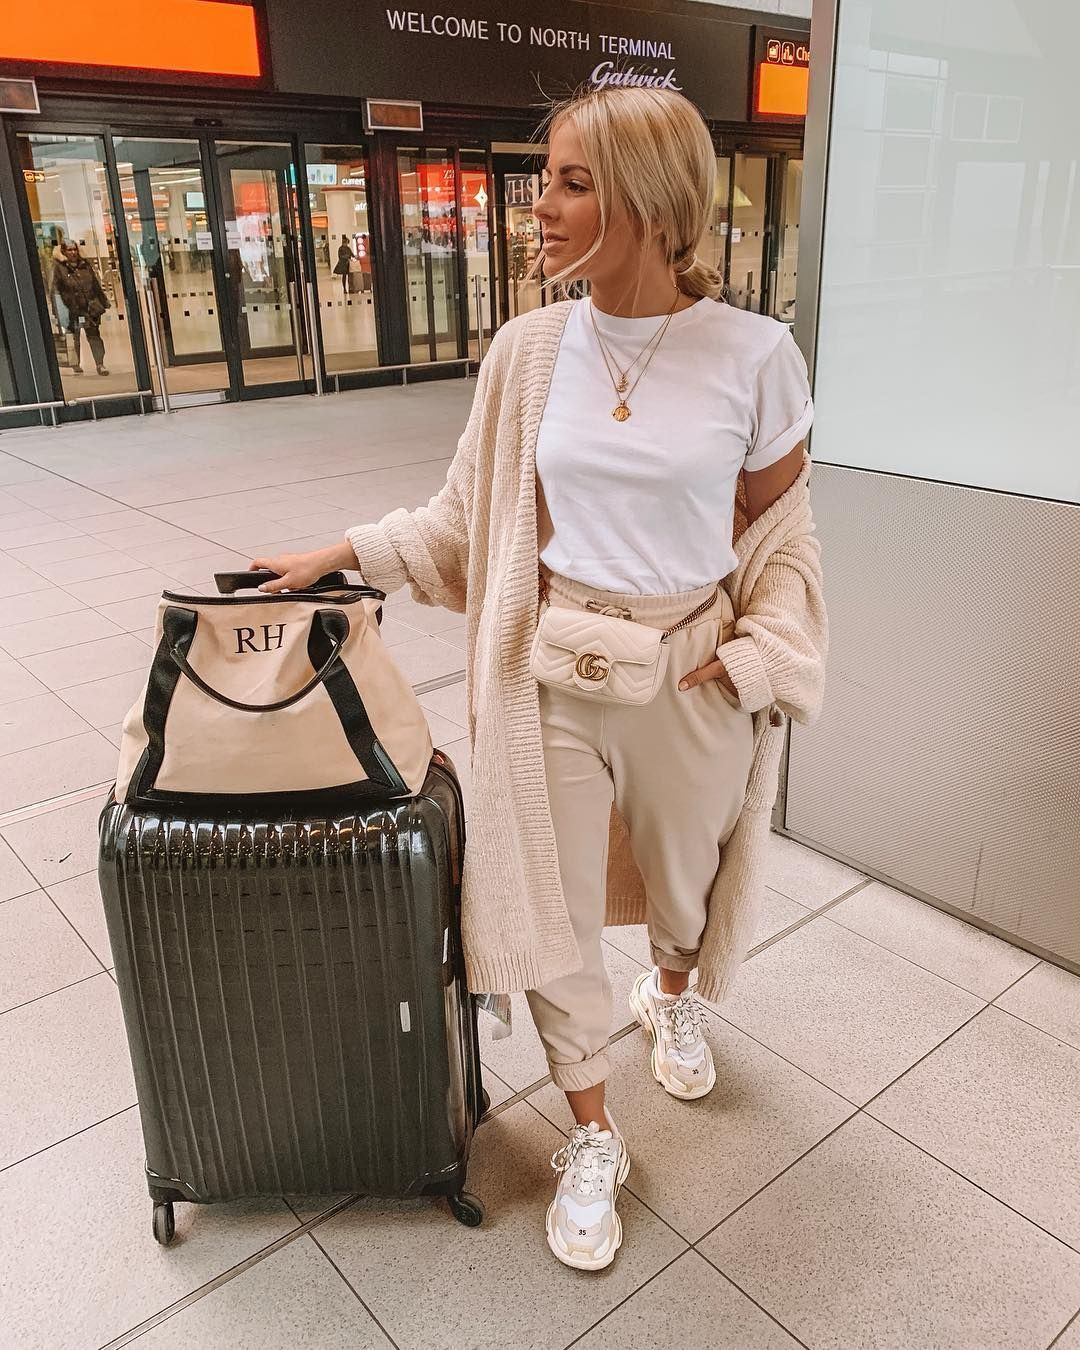 "Ruby Holley on Instagram: ""Is it weird that I plan my airport outfit more than I plan my holiday outfits? 🤷🏼‍♀️ off to Milan tonight, would love any recommendations…"""